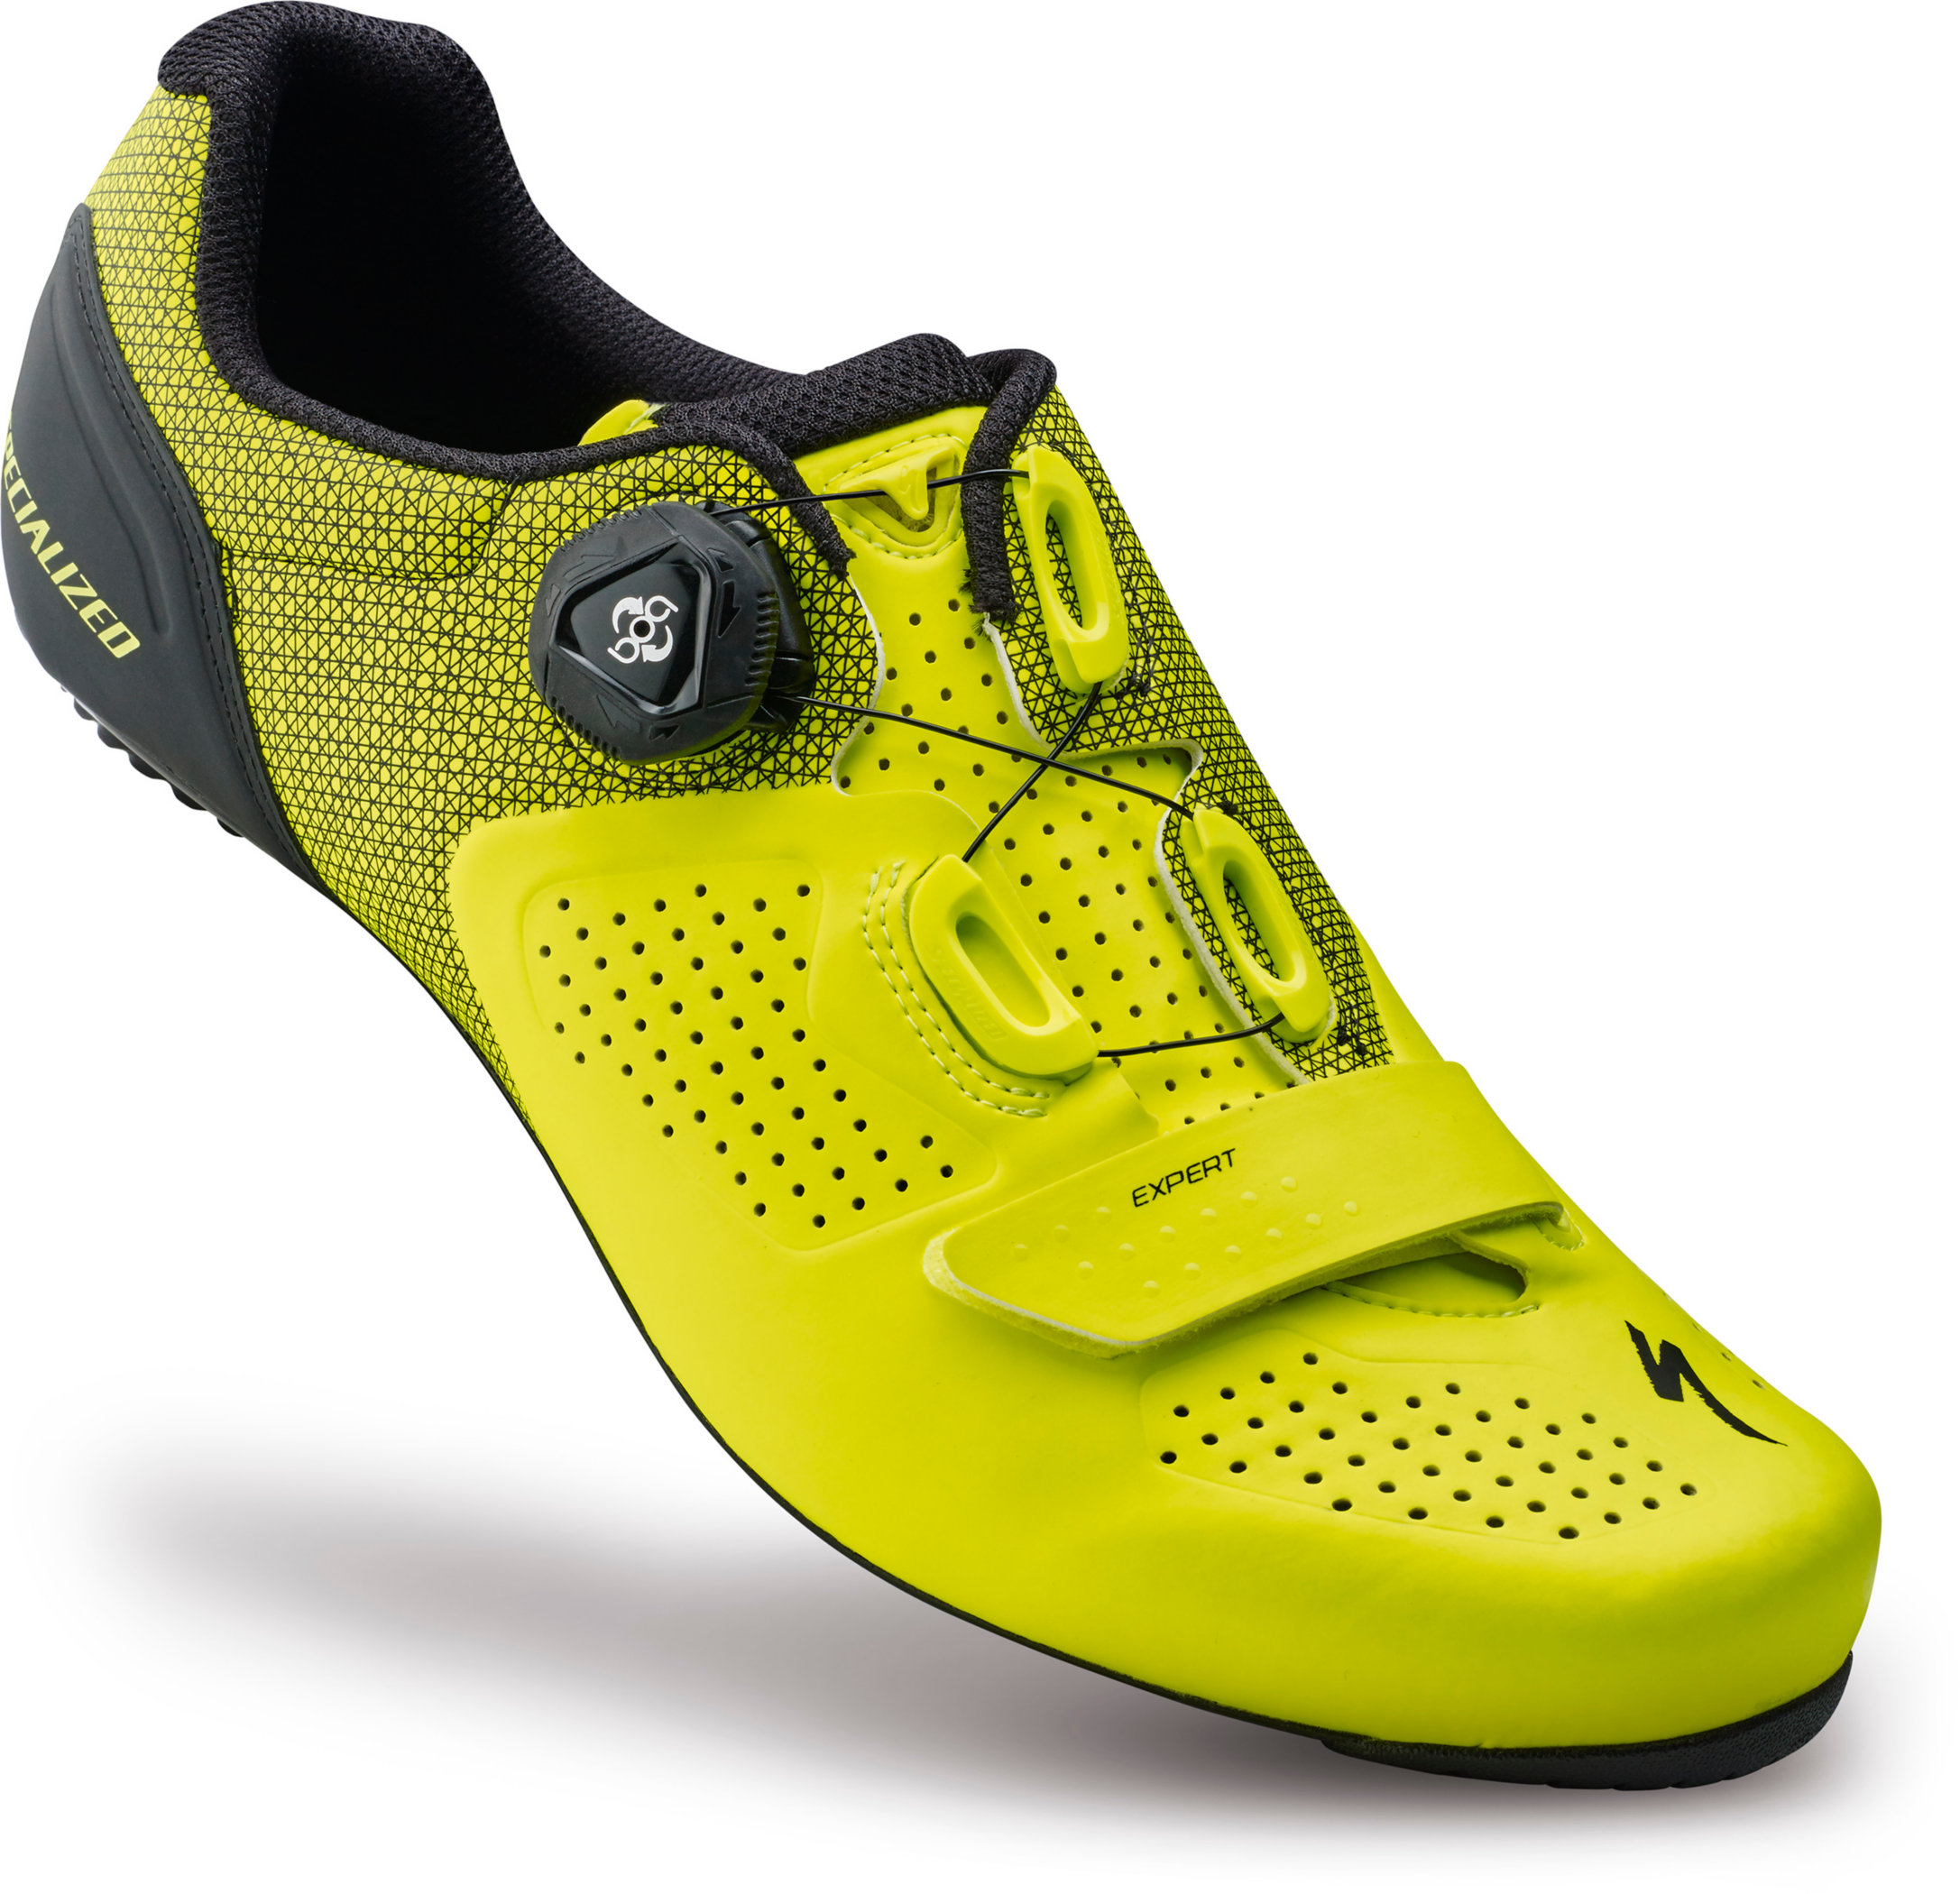 SPECIALIZED EXPERT RD SHOE NEON YEL 39/6.5 - Bikedreams & Dustbikes